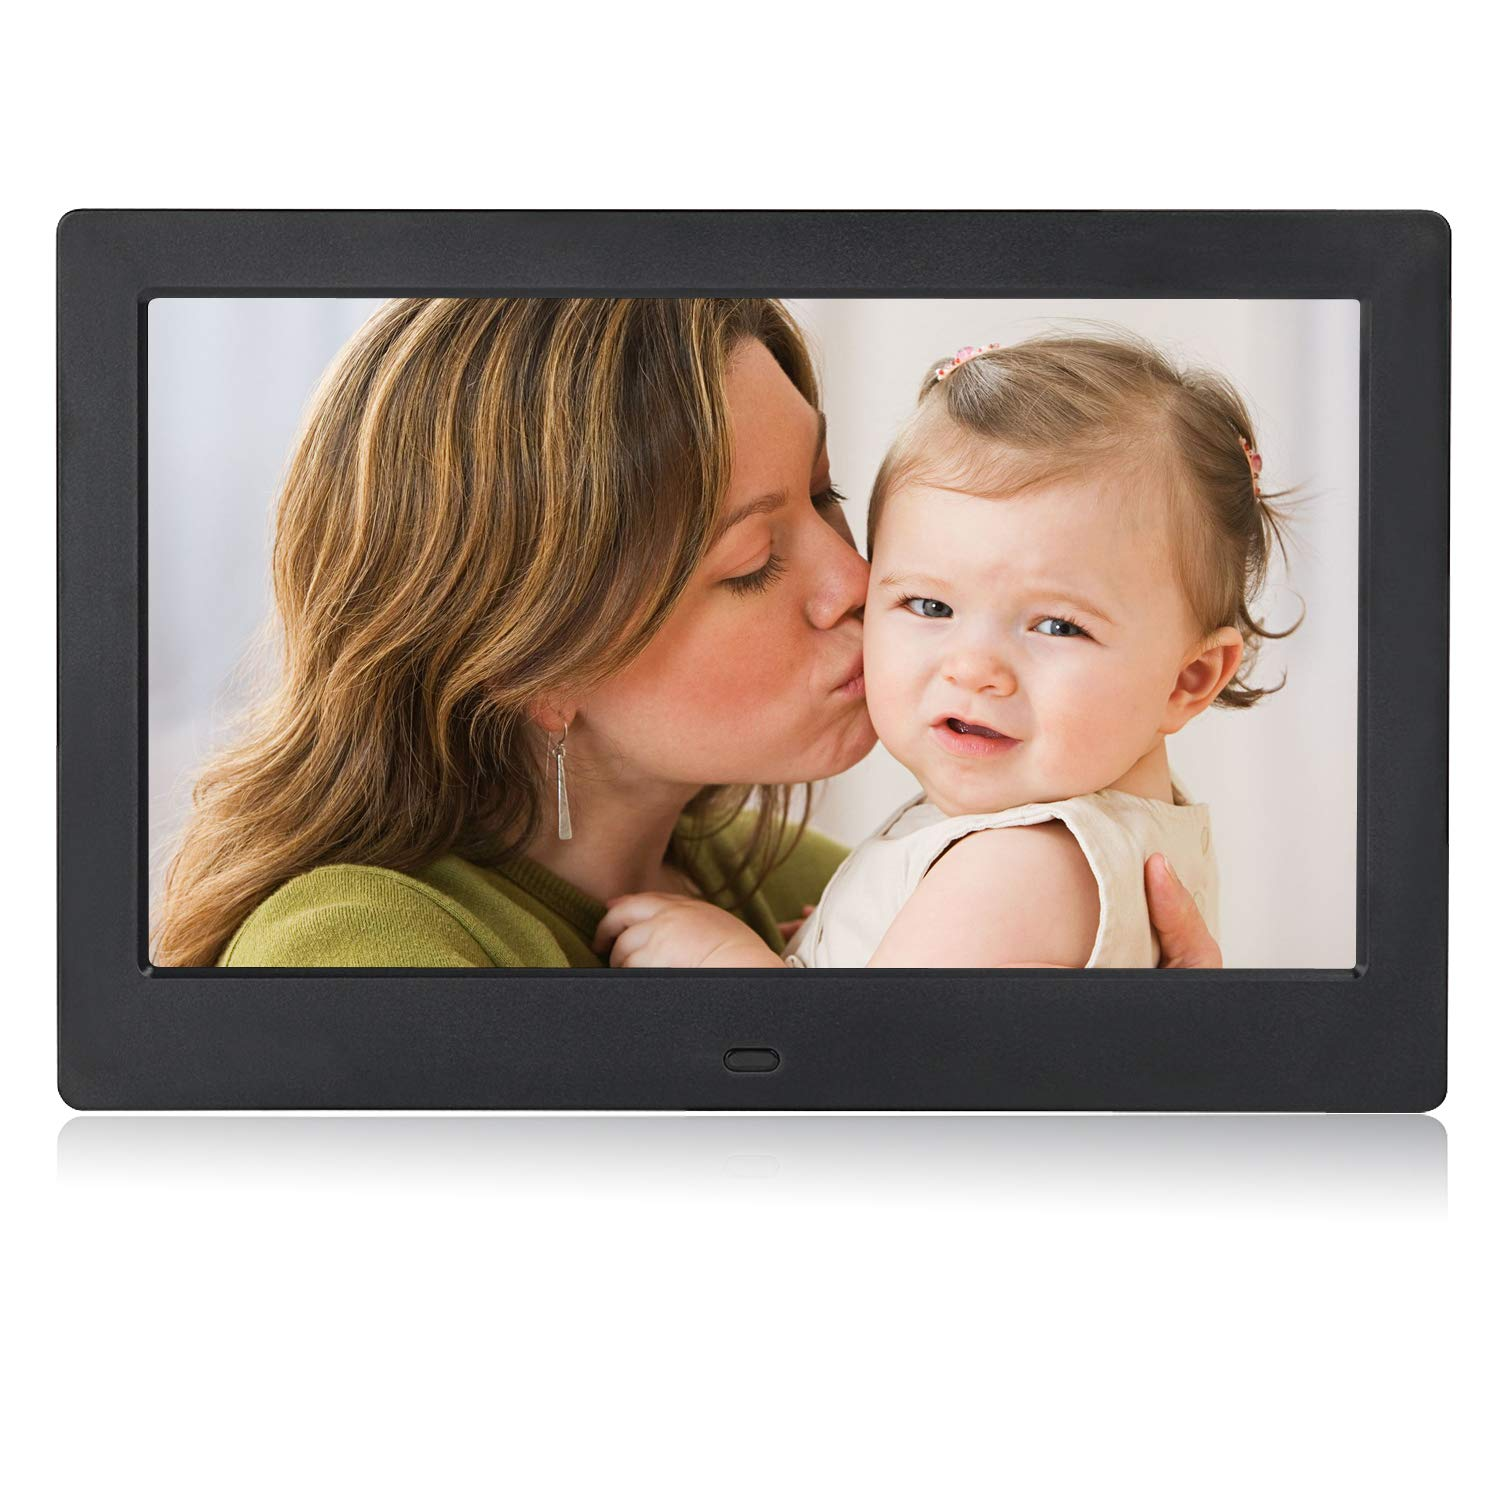 Digital Picture Photo Frame IPS Widescreen Electronic Picture Frame High Definition(1080P) with LCD Display 1024x768,No USB/SD Included,with Wireless Remote Control(Black) by Acecharming (Image #1)